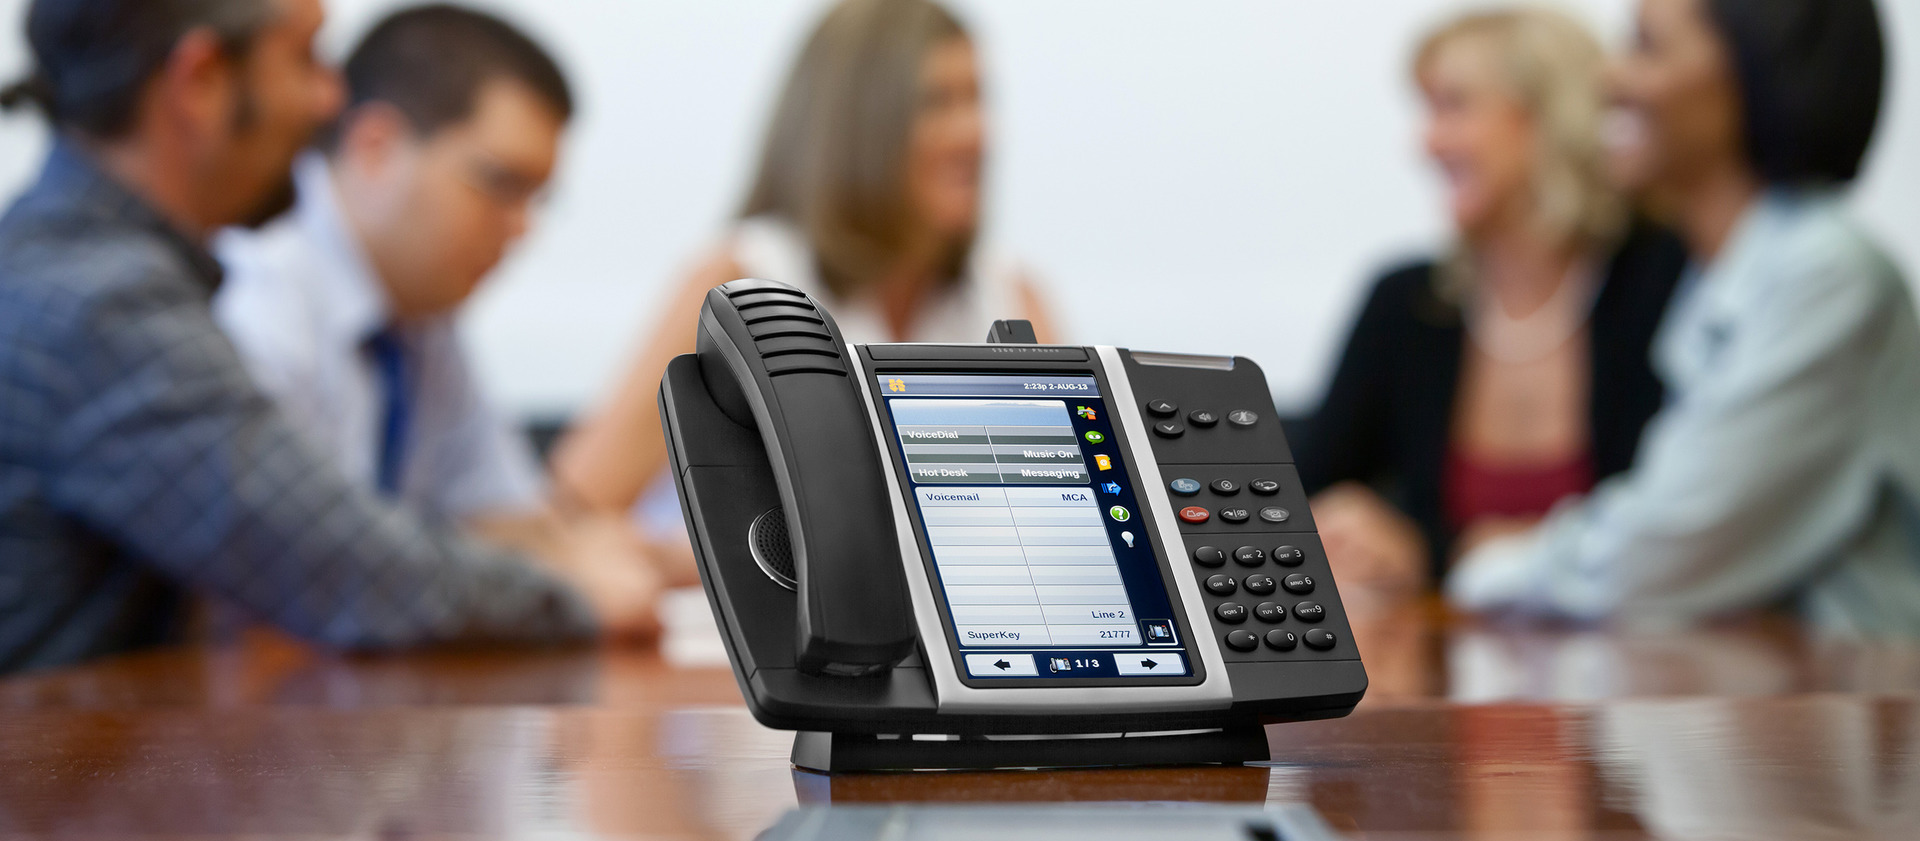 Northern Utah Business Phone Systems